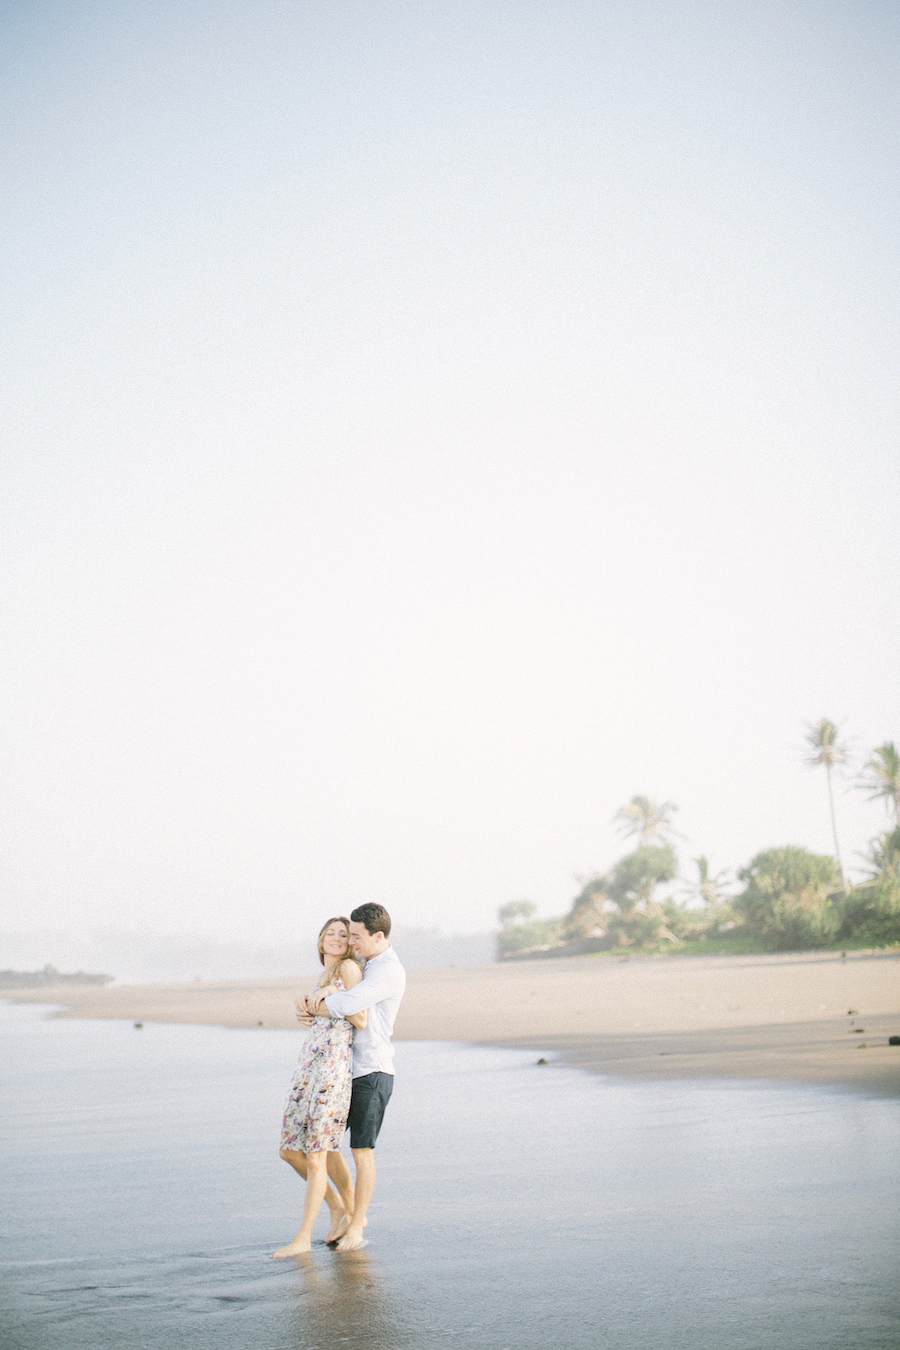 saya-photography-pre-wedding-engagement-bali-canggu-66.jpg